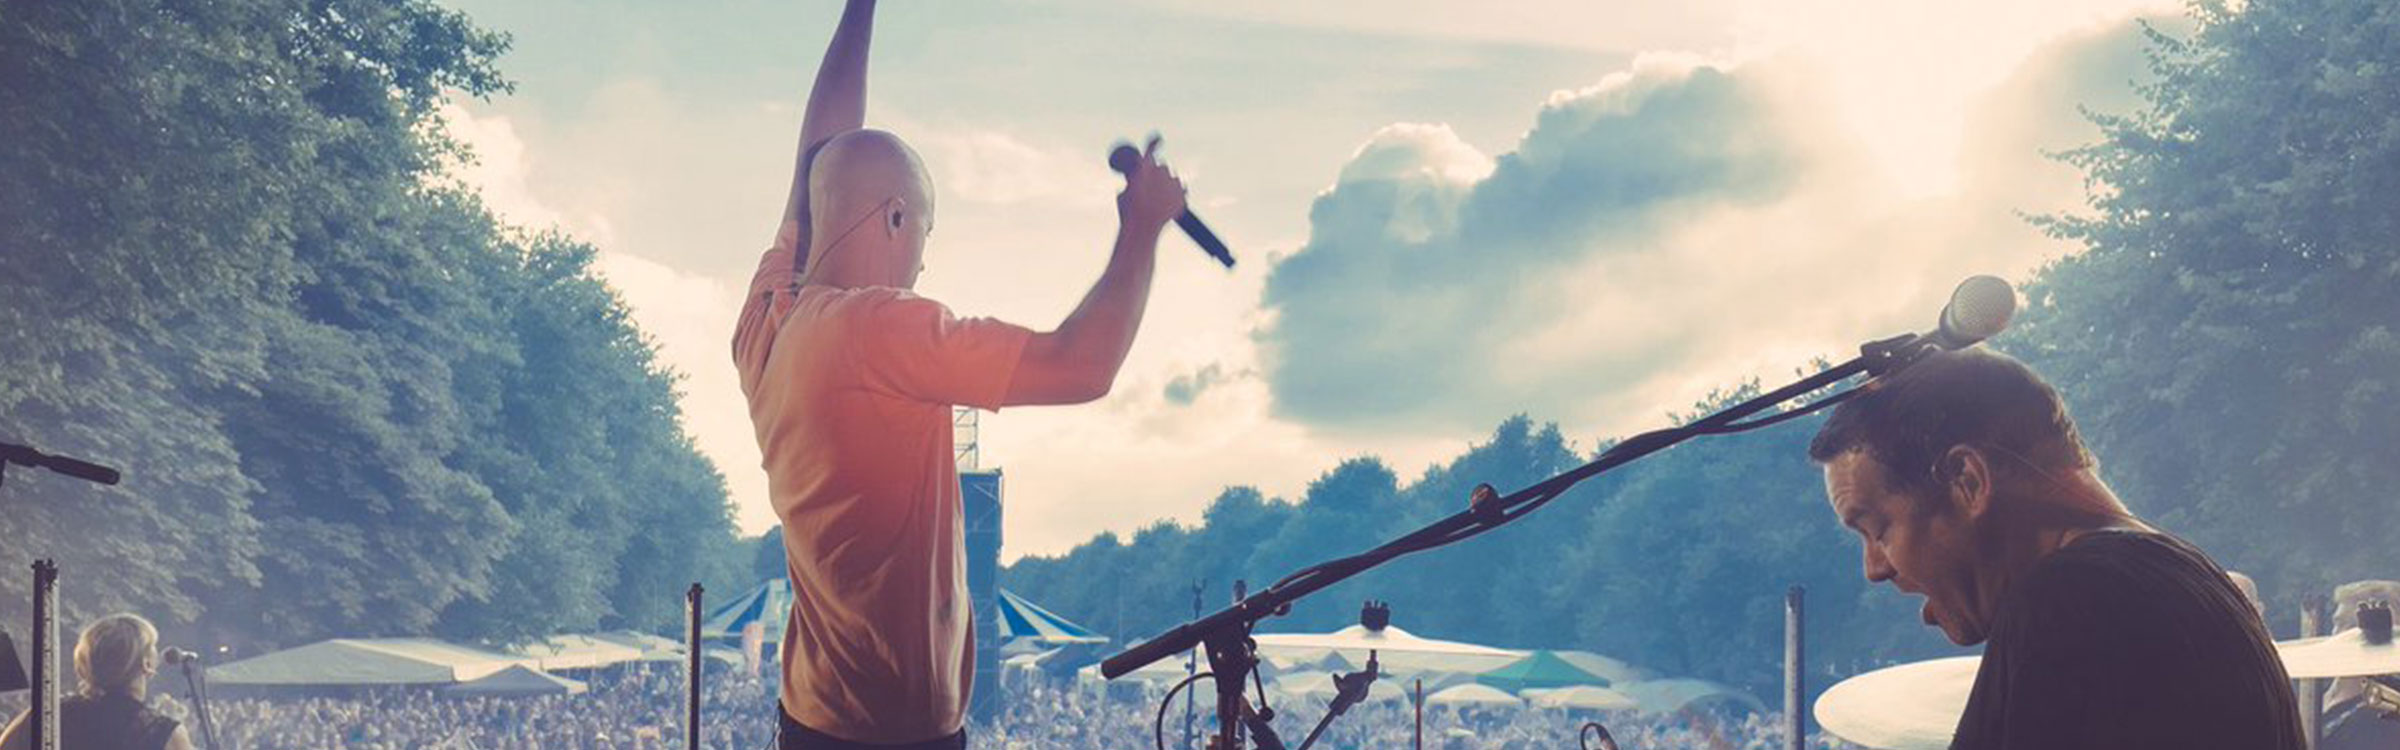 Headermilow1